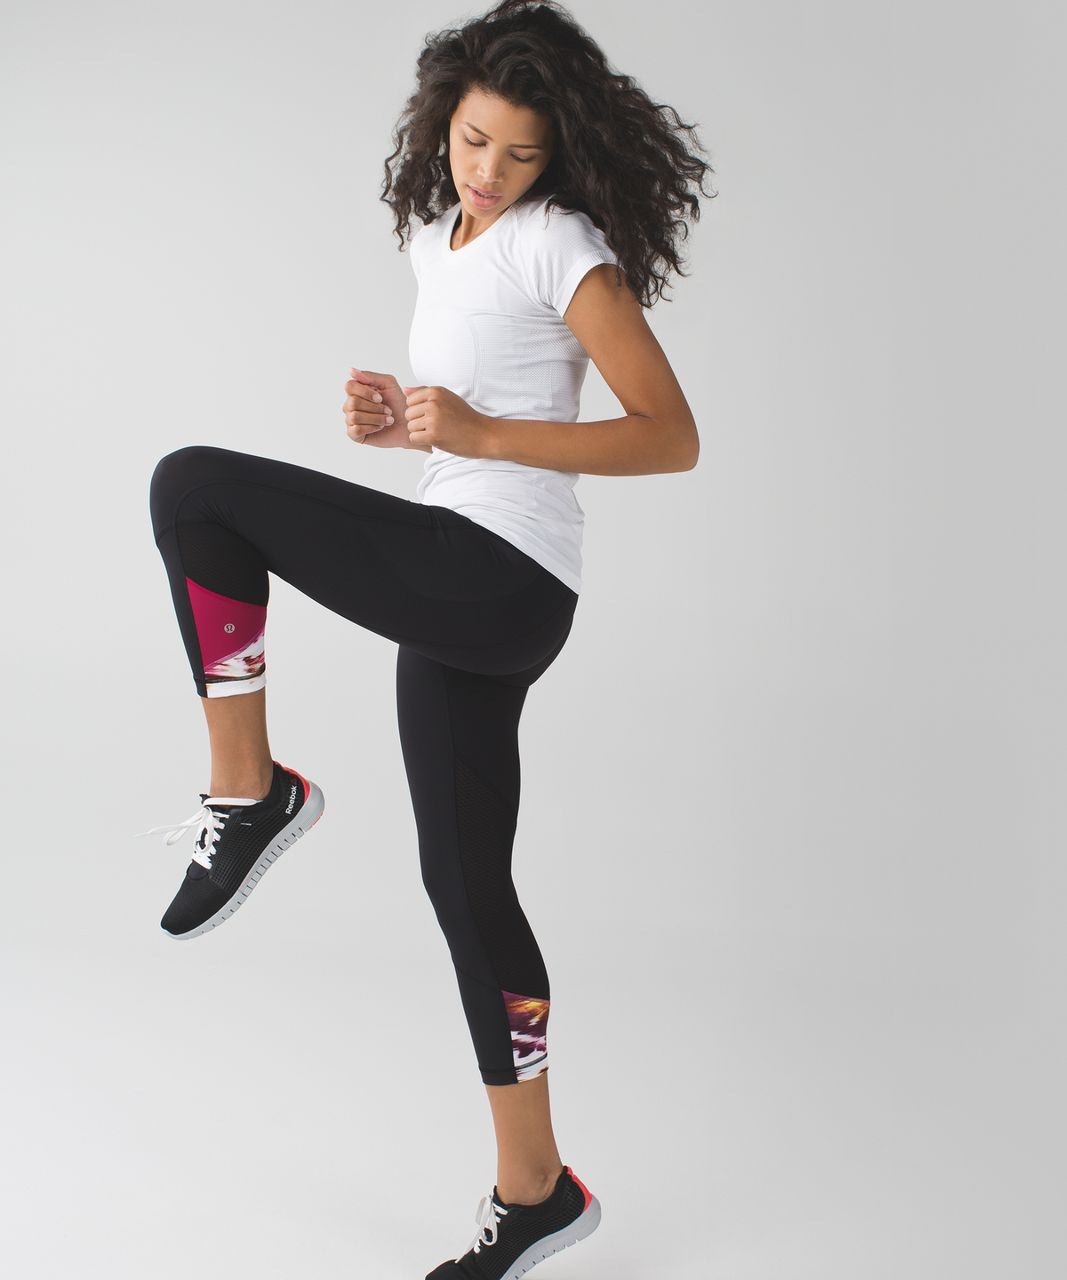 Lululemon Pace Rival Crop - Black / Pigment Wind Berry Rumble Multi / Berry Rumble